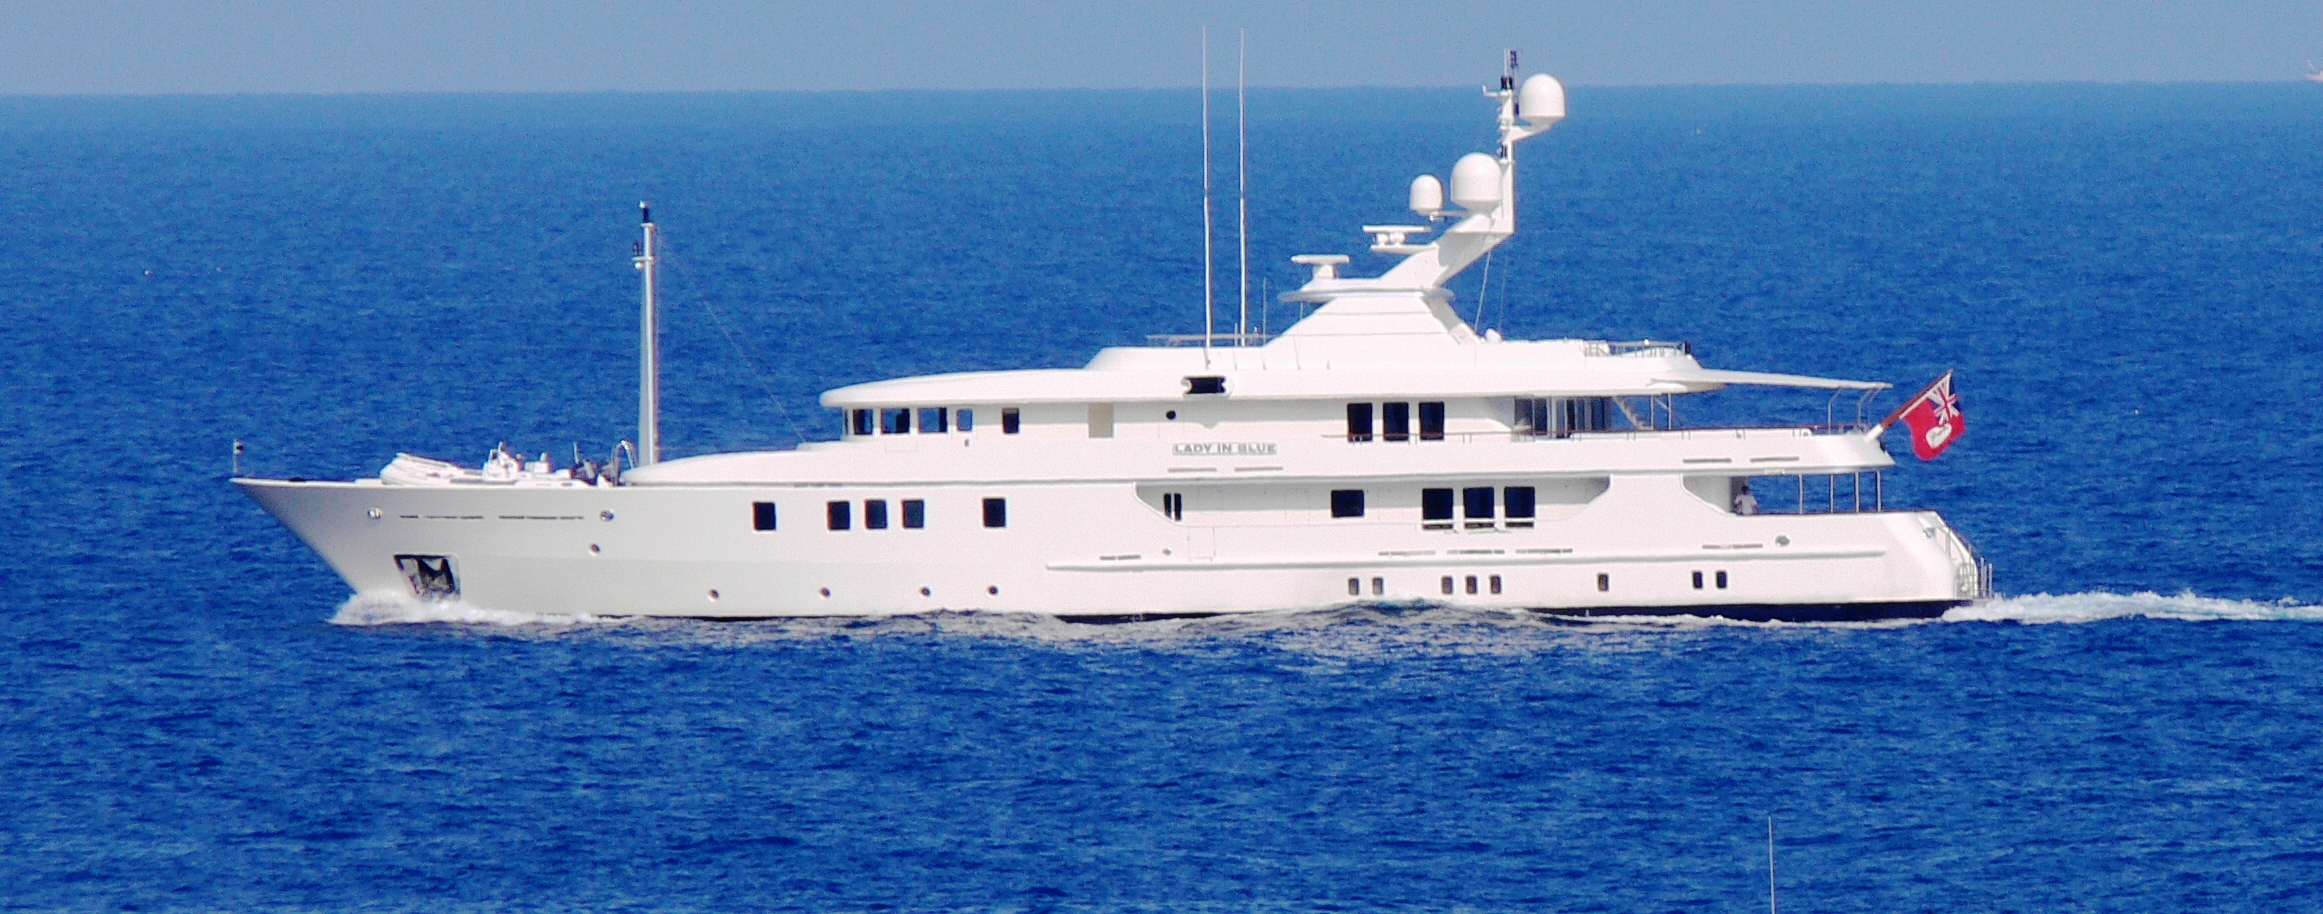 Bluewater yacht charter luxury yachts for sale crew html for Luxury motor yachts for sale